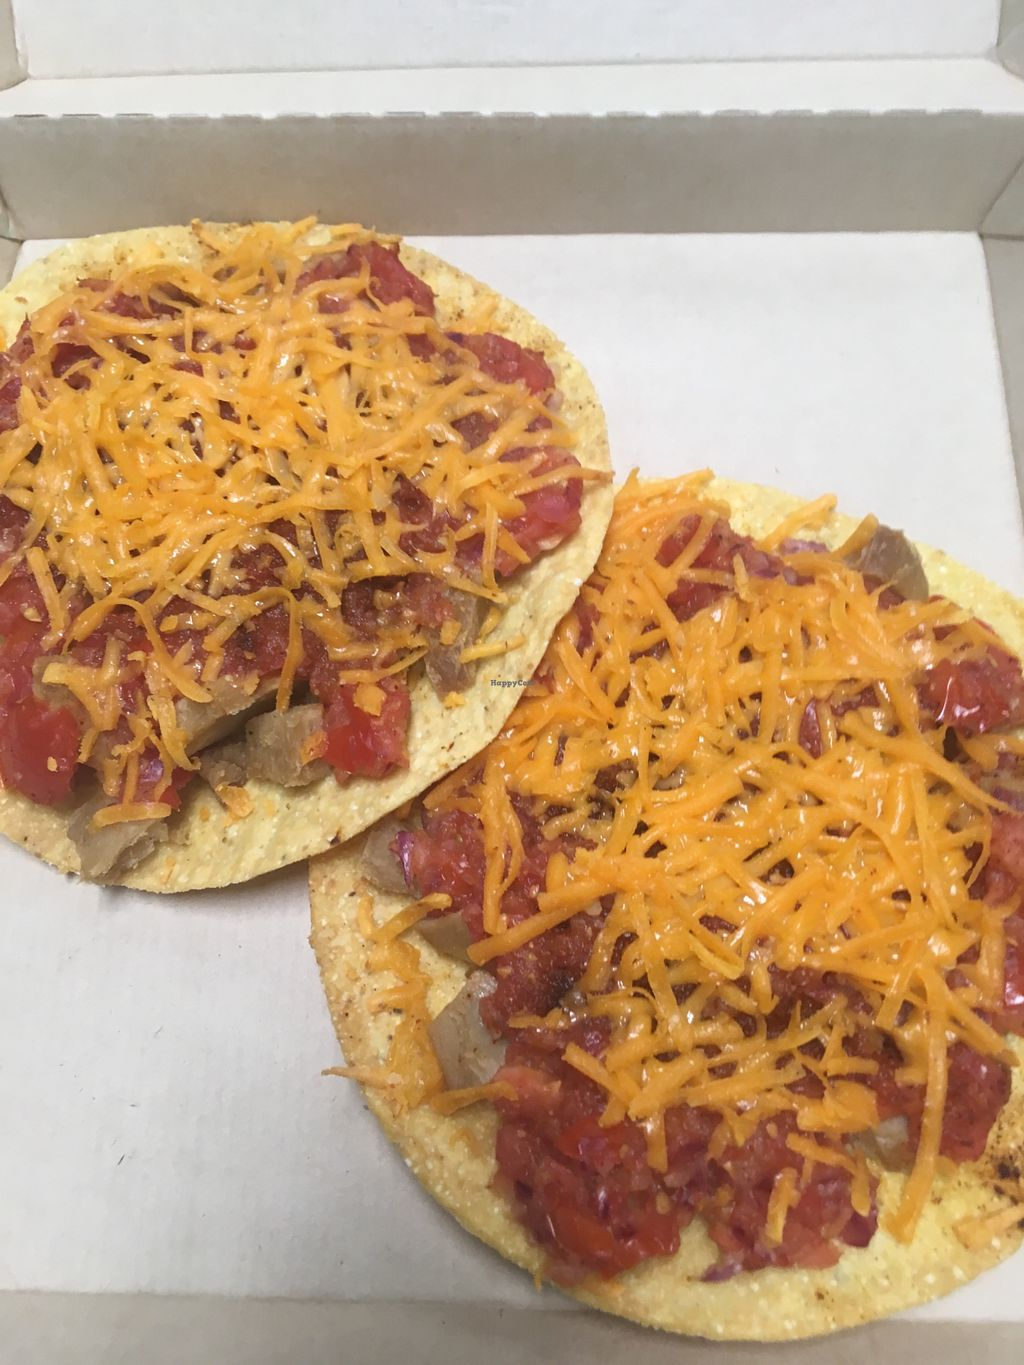 """Photo of Vegan Cooking Today  by <a href=""""/members/profile/Vegancookingtoday"""">Vegancookingtoday</a> <br/>Tostada vegan <br/> May 8, 2018  - <a href='/contact/abuse/image/114219/397102'>Report</a>"""